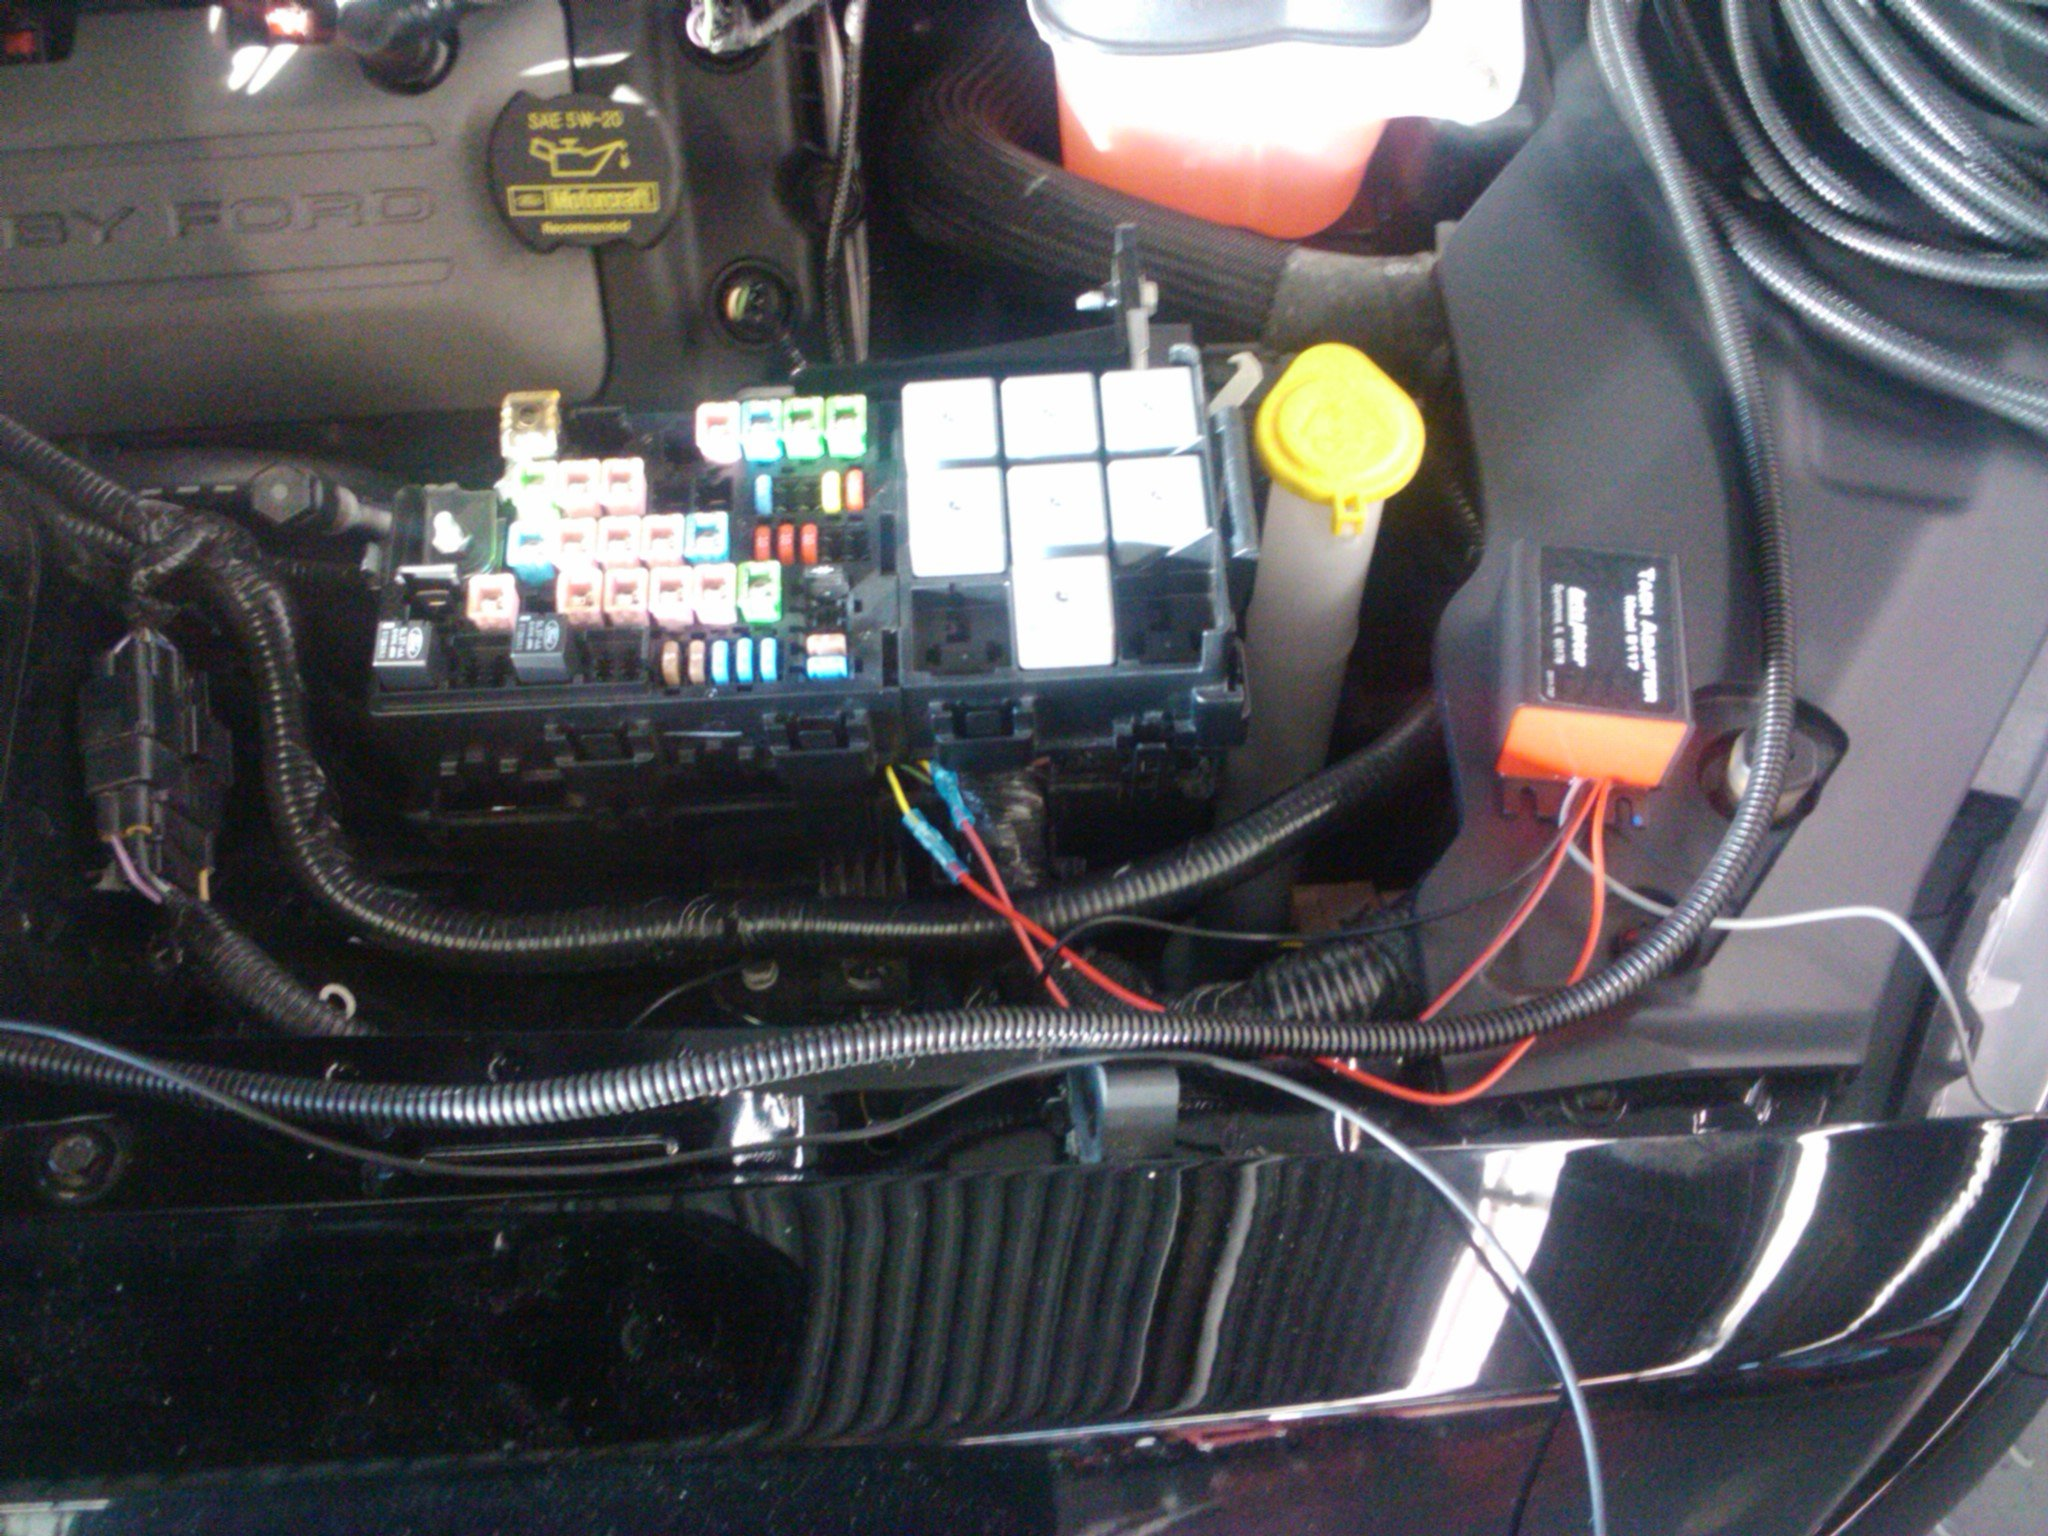 112035d1286042393 wiring autometer tach shiftlight 2011 mustang gt 5 0 2010 10 01 17.22.03 diagrams 1013458 autometer tach wiring diagram autometer  at alyssarenee.co